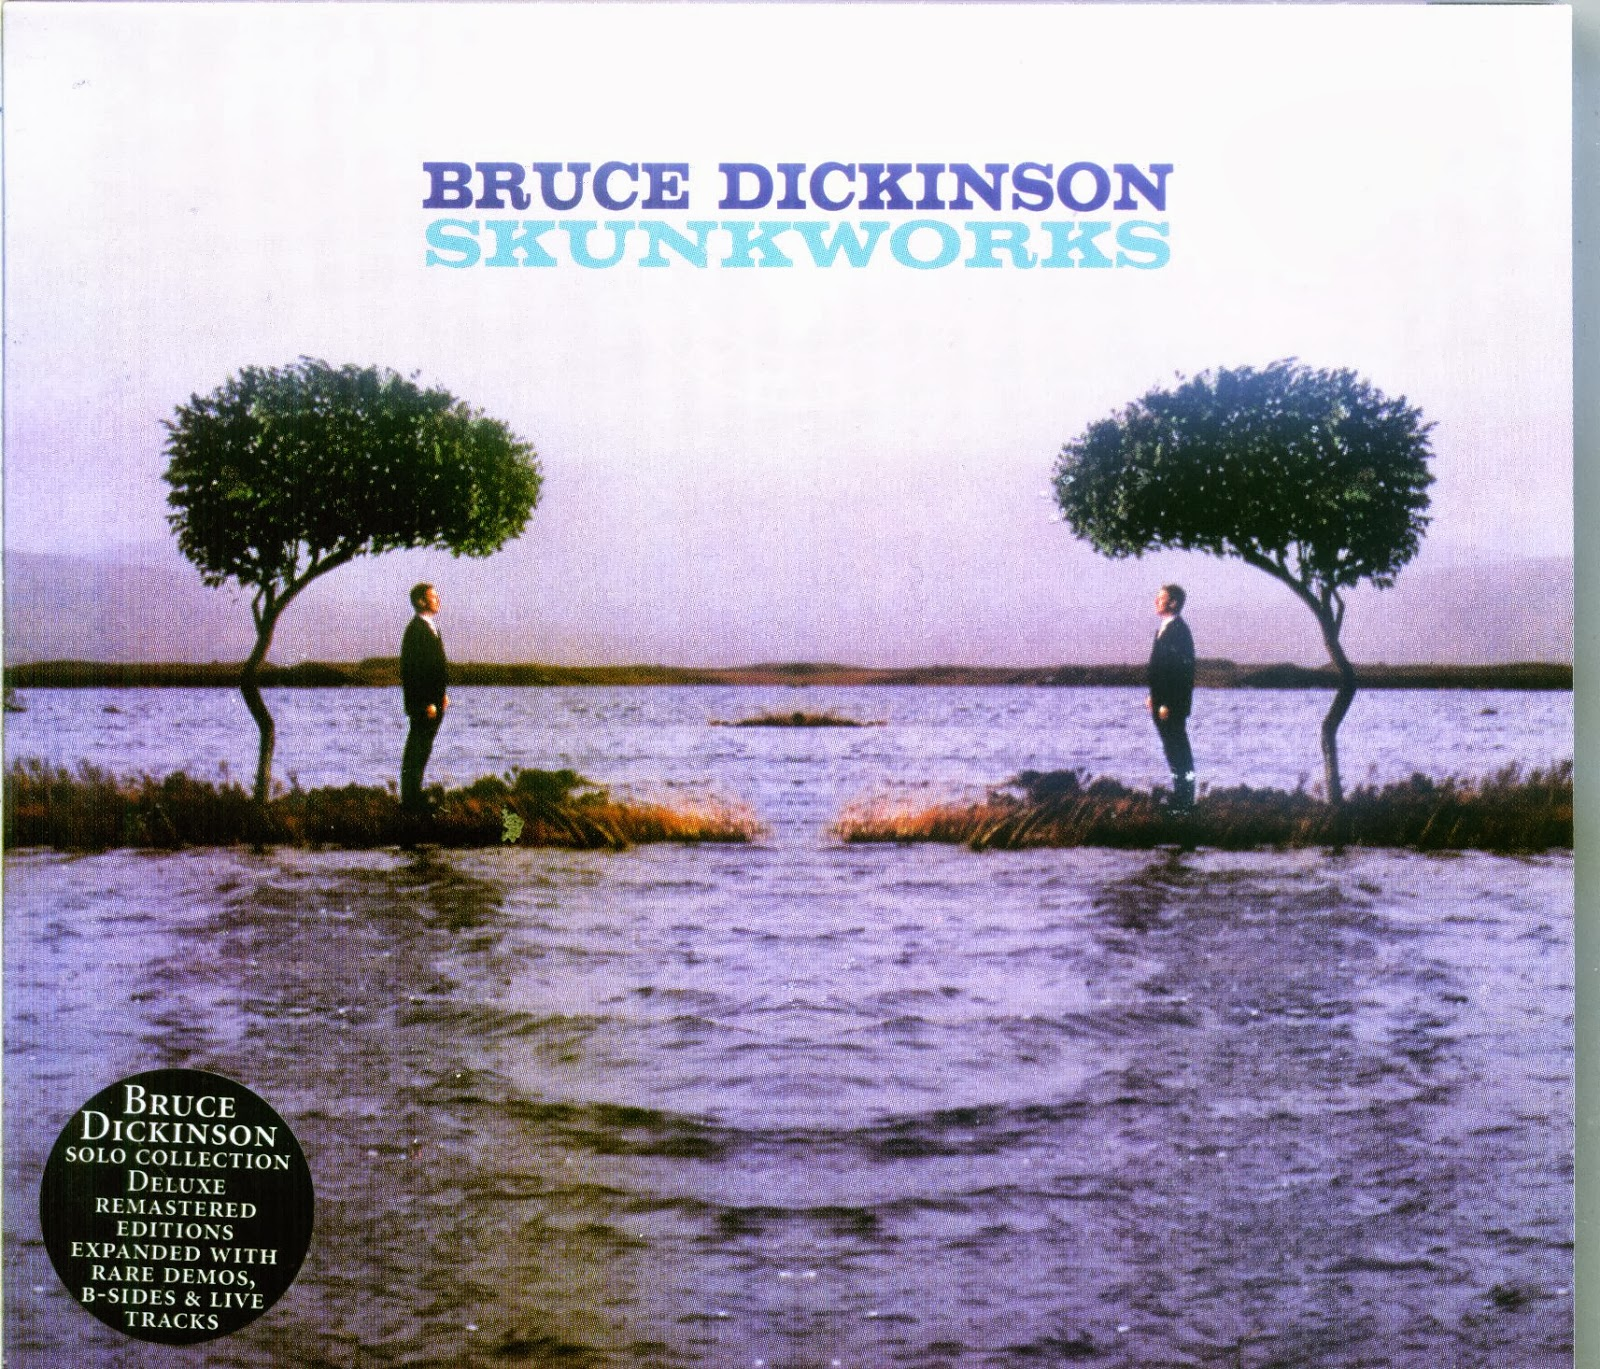 Bruce Dickinson Collection